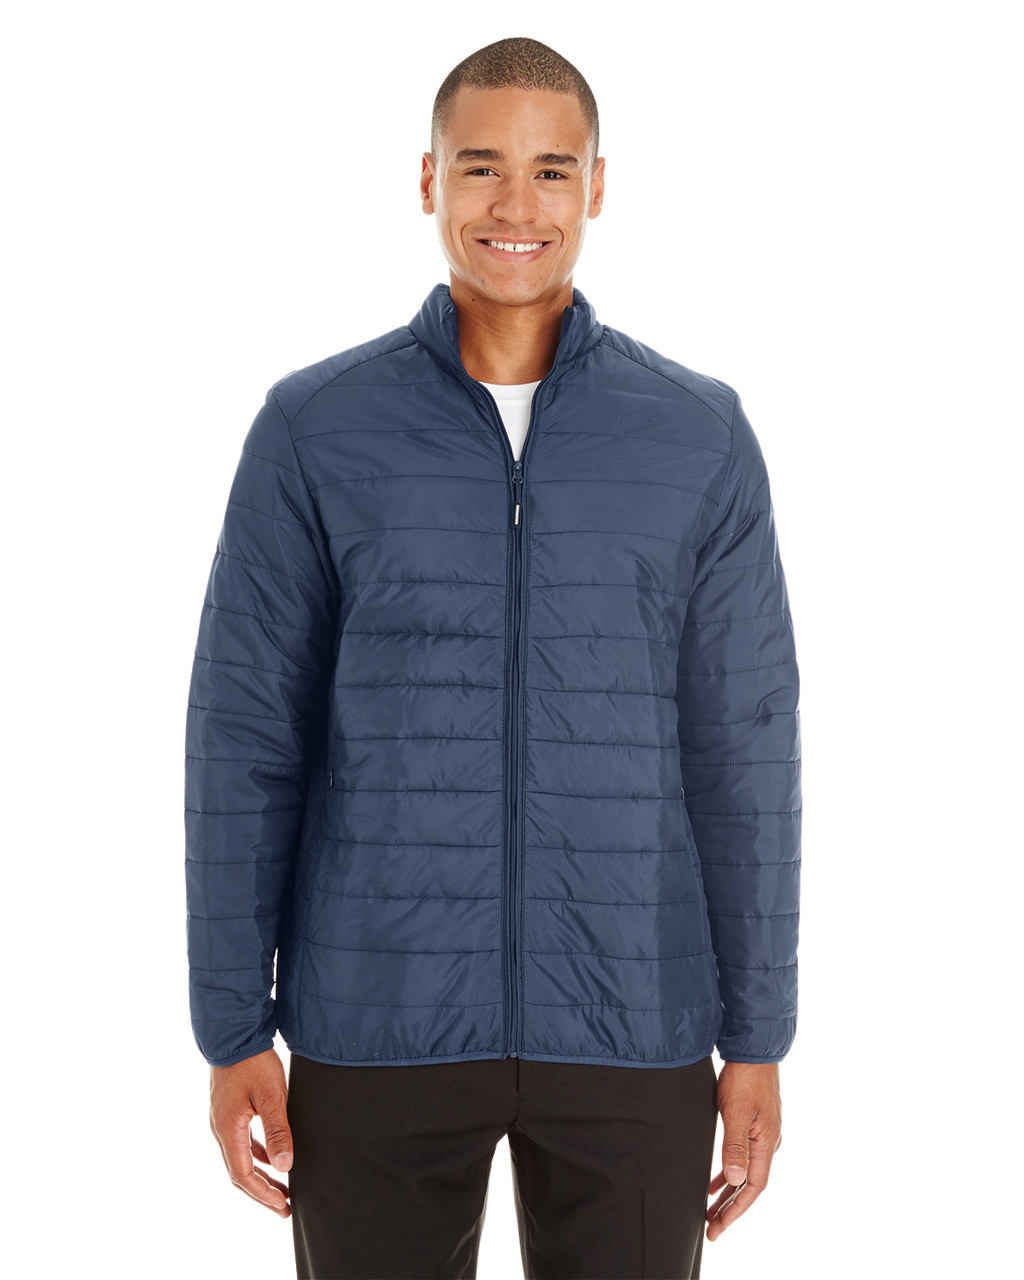 Classic Navy - CE700 Ash City - Core 365 Men's Prevail Packable Puffer Jacket | Blankclothing.ca